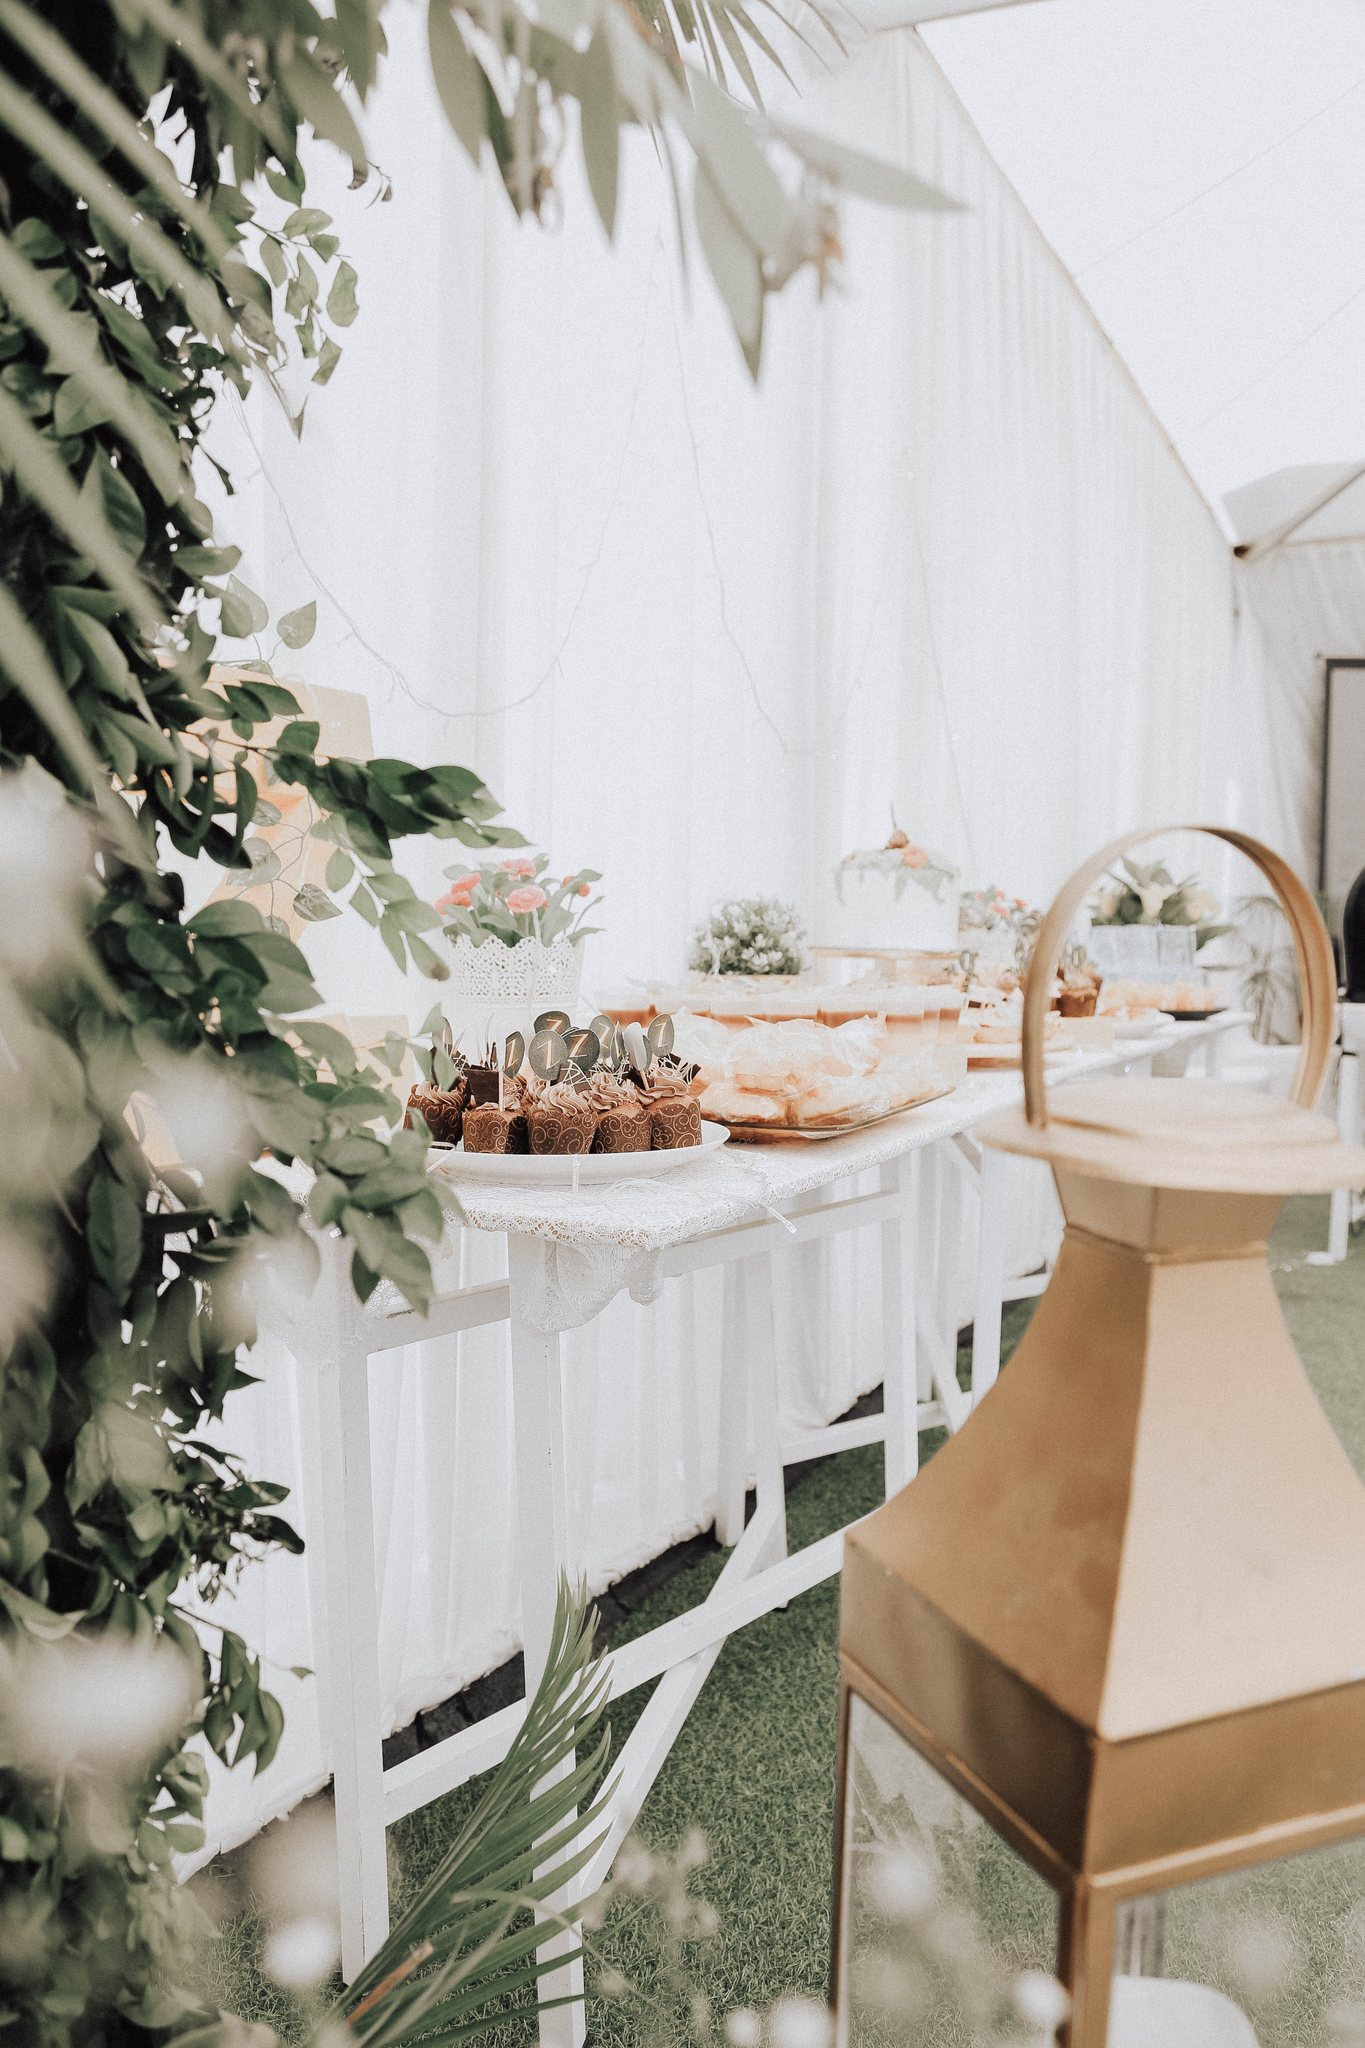 Events-by-Coco-Sweet Table1.jpg